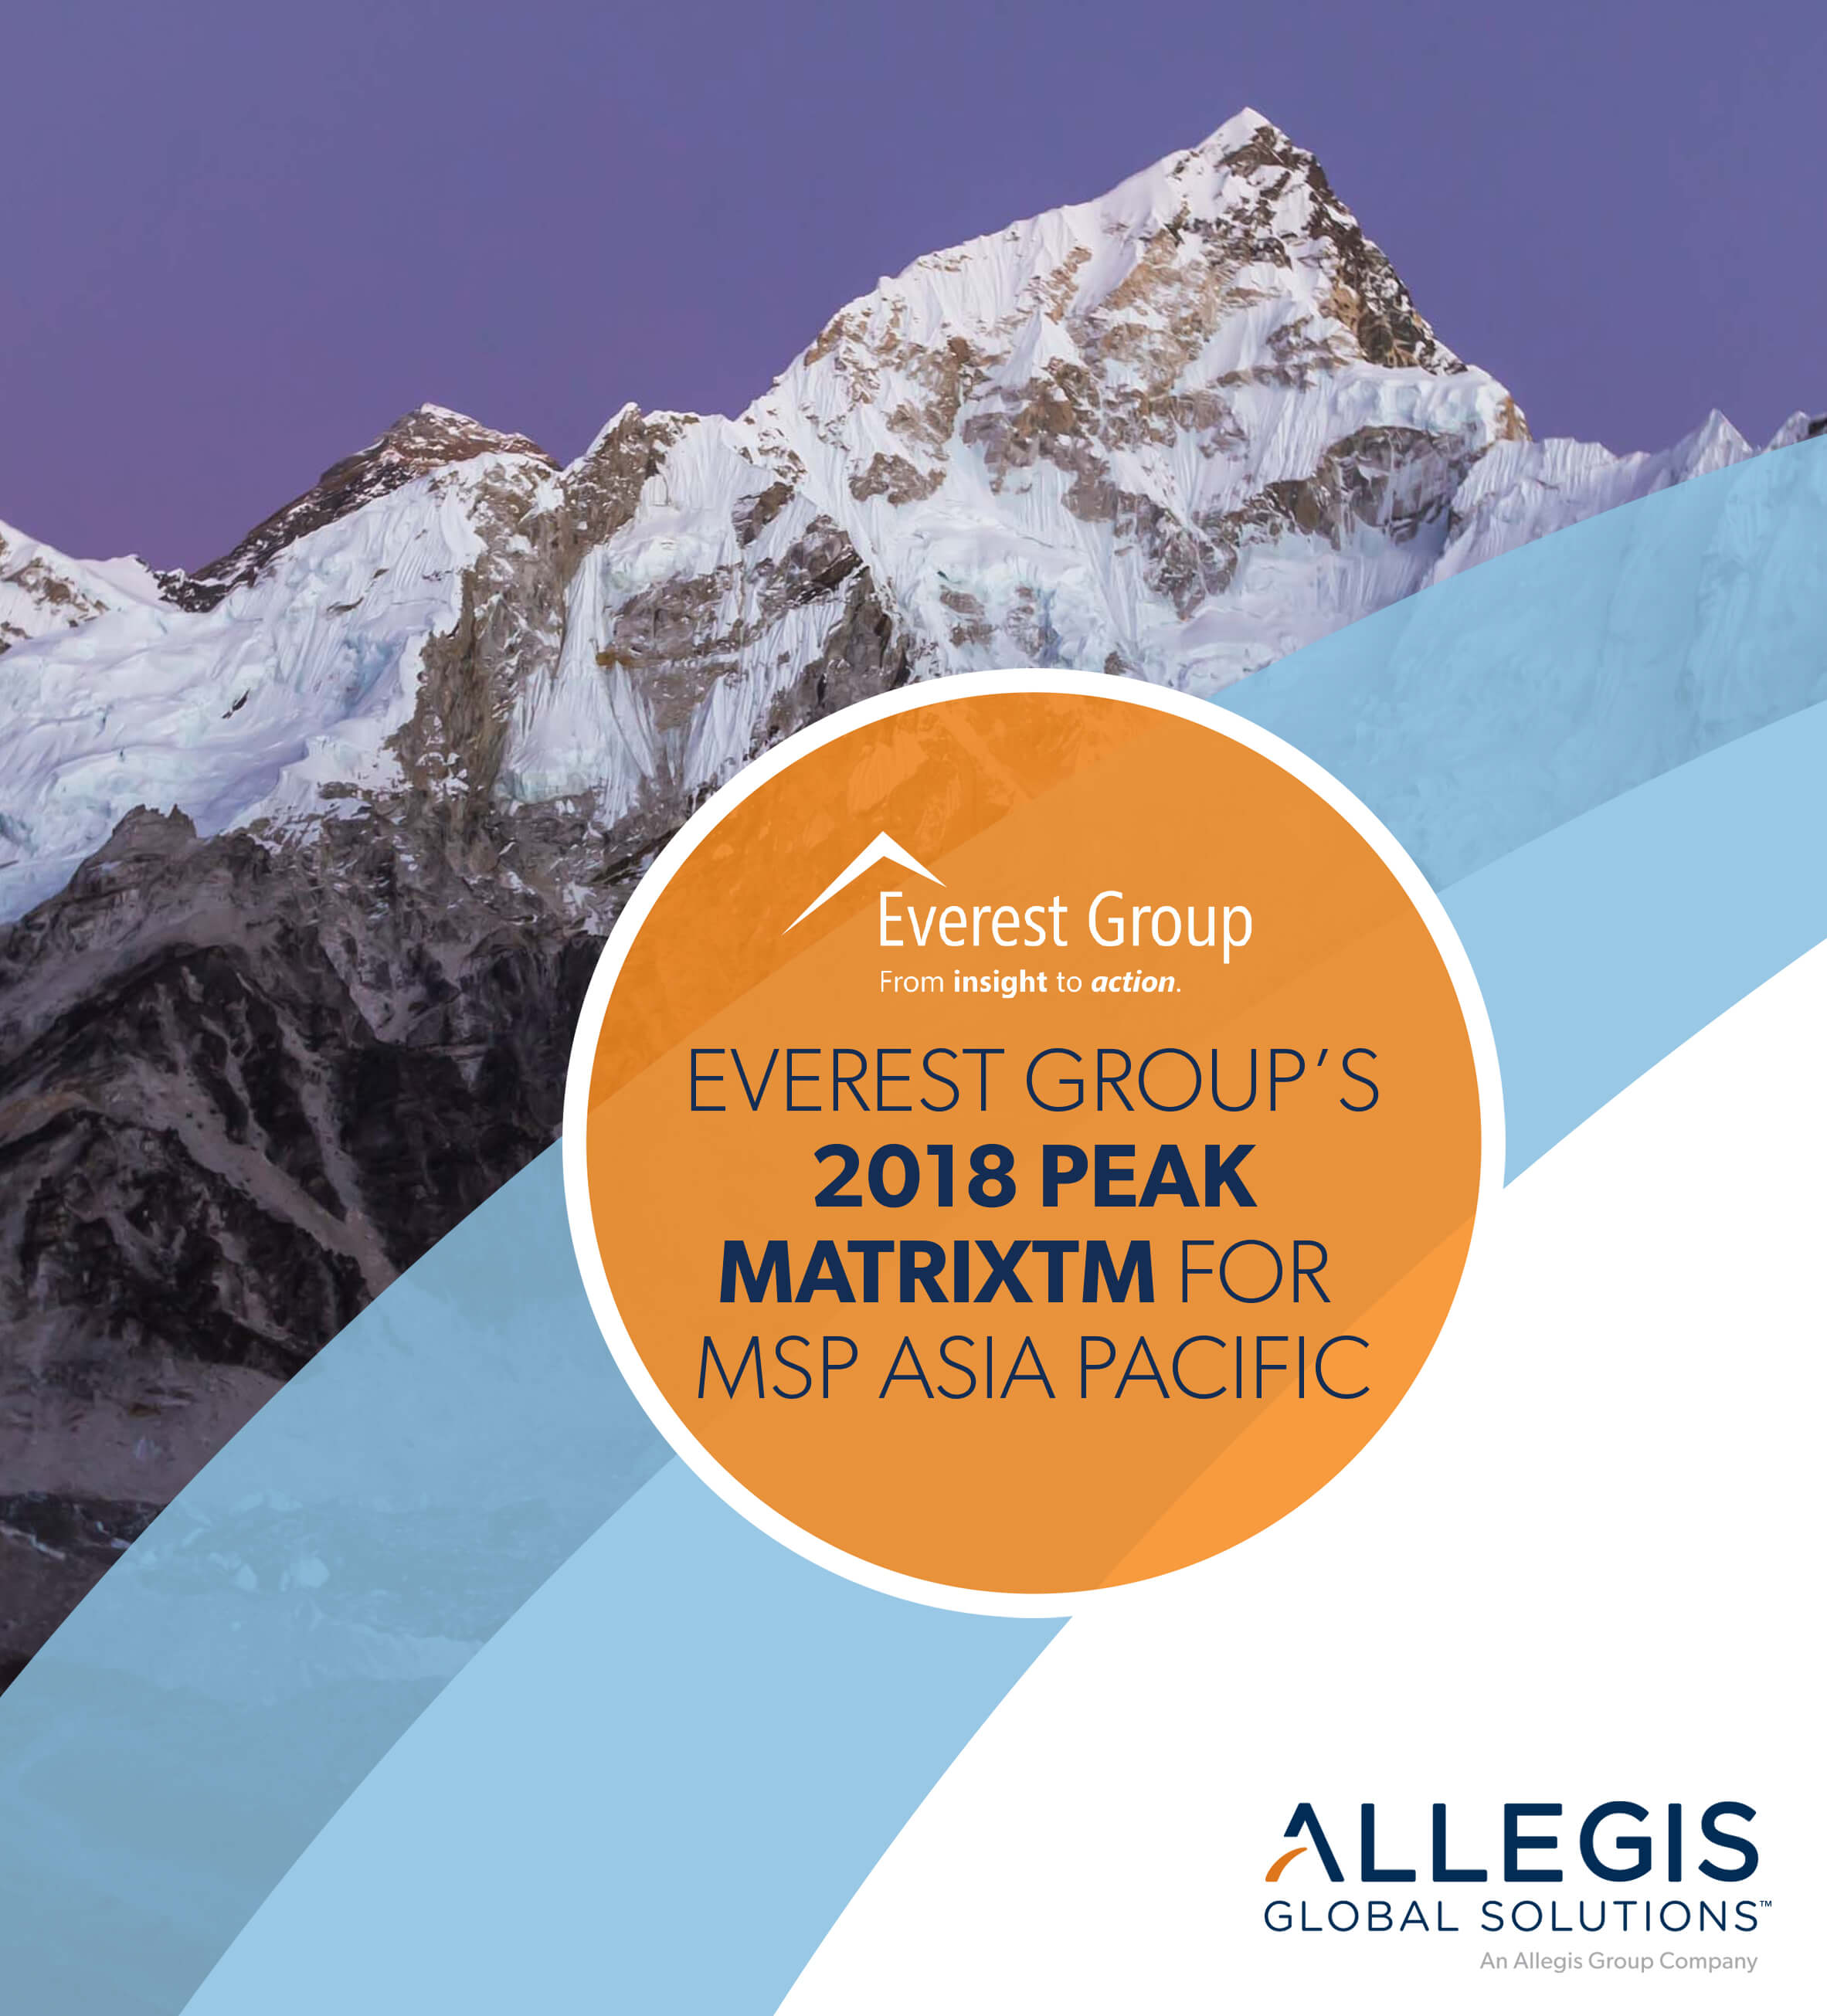 Mountain Peaks with Snow Caps - For Everest Group's 2018 Peak Matrix For MSP Asia Pacific